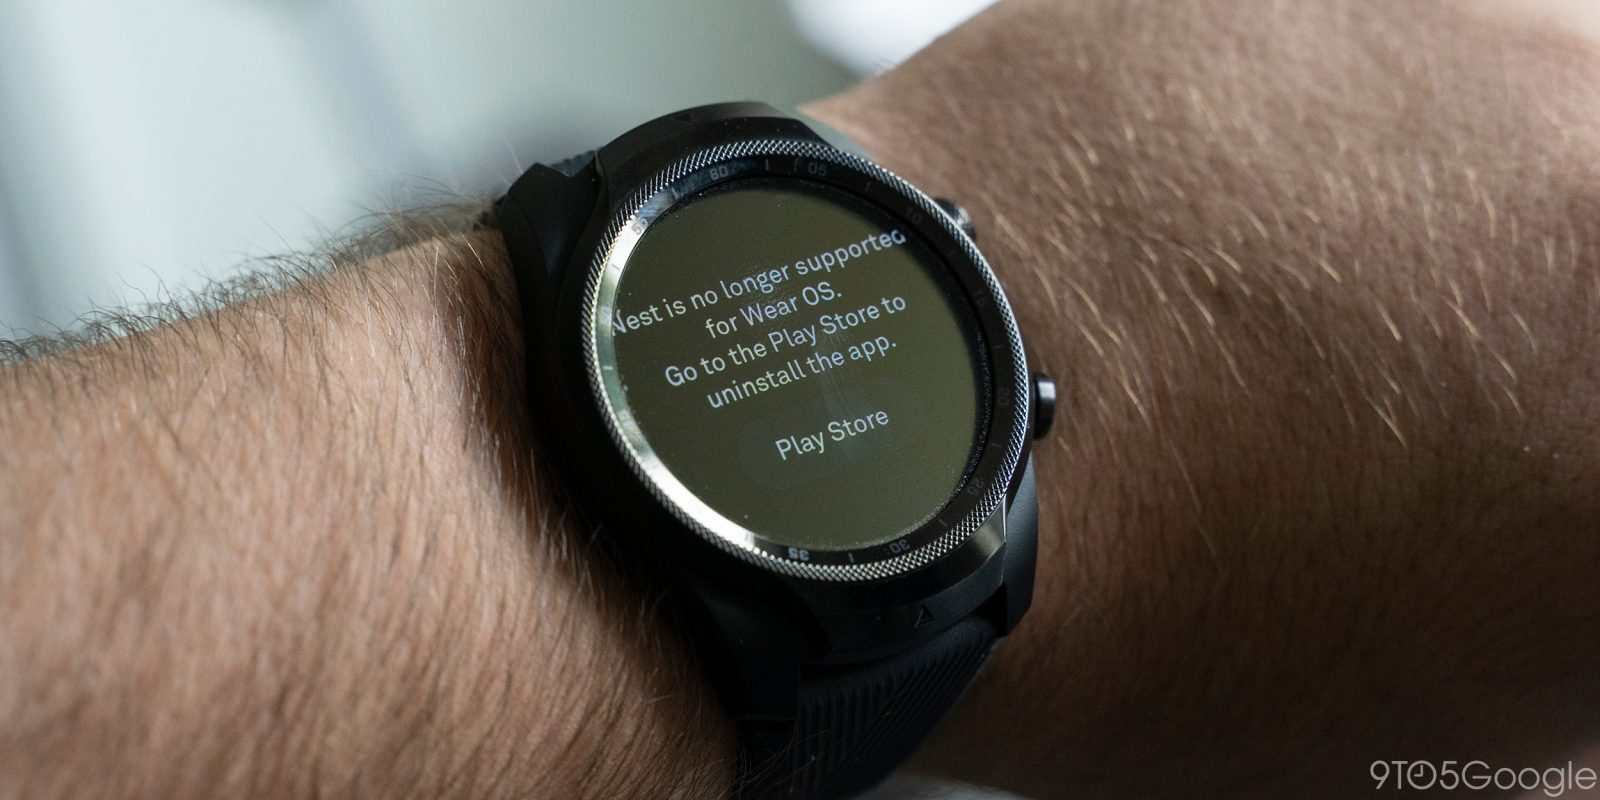 Nest kills smartwatch apps for Wear OS and Apple Watch - 9to5Google